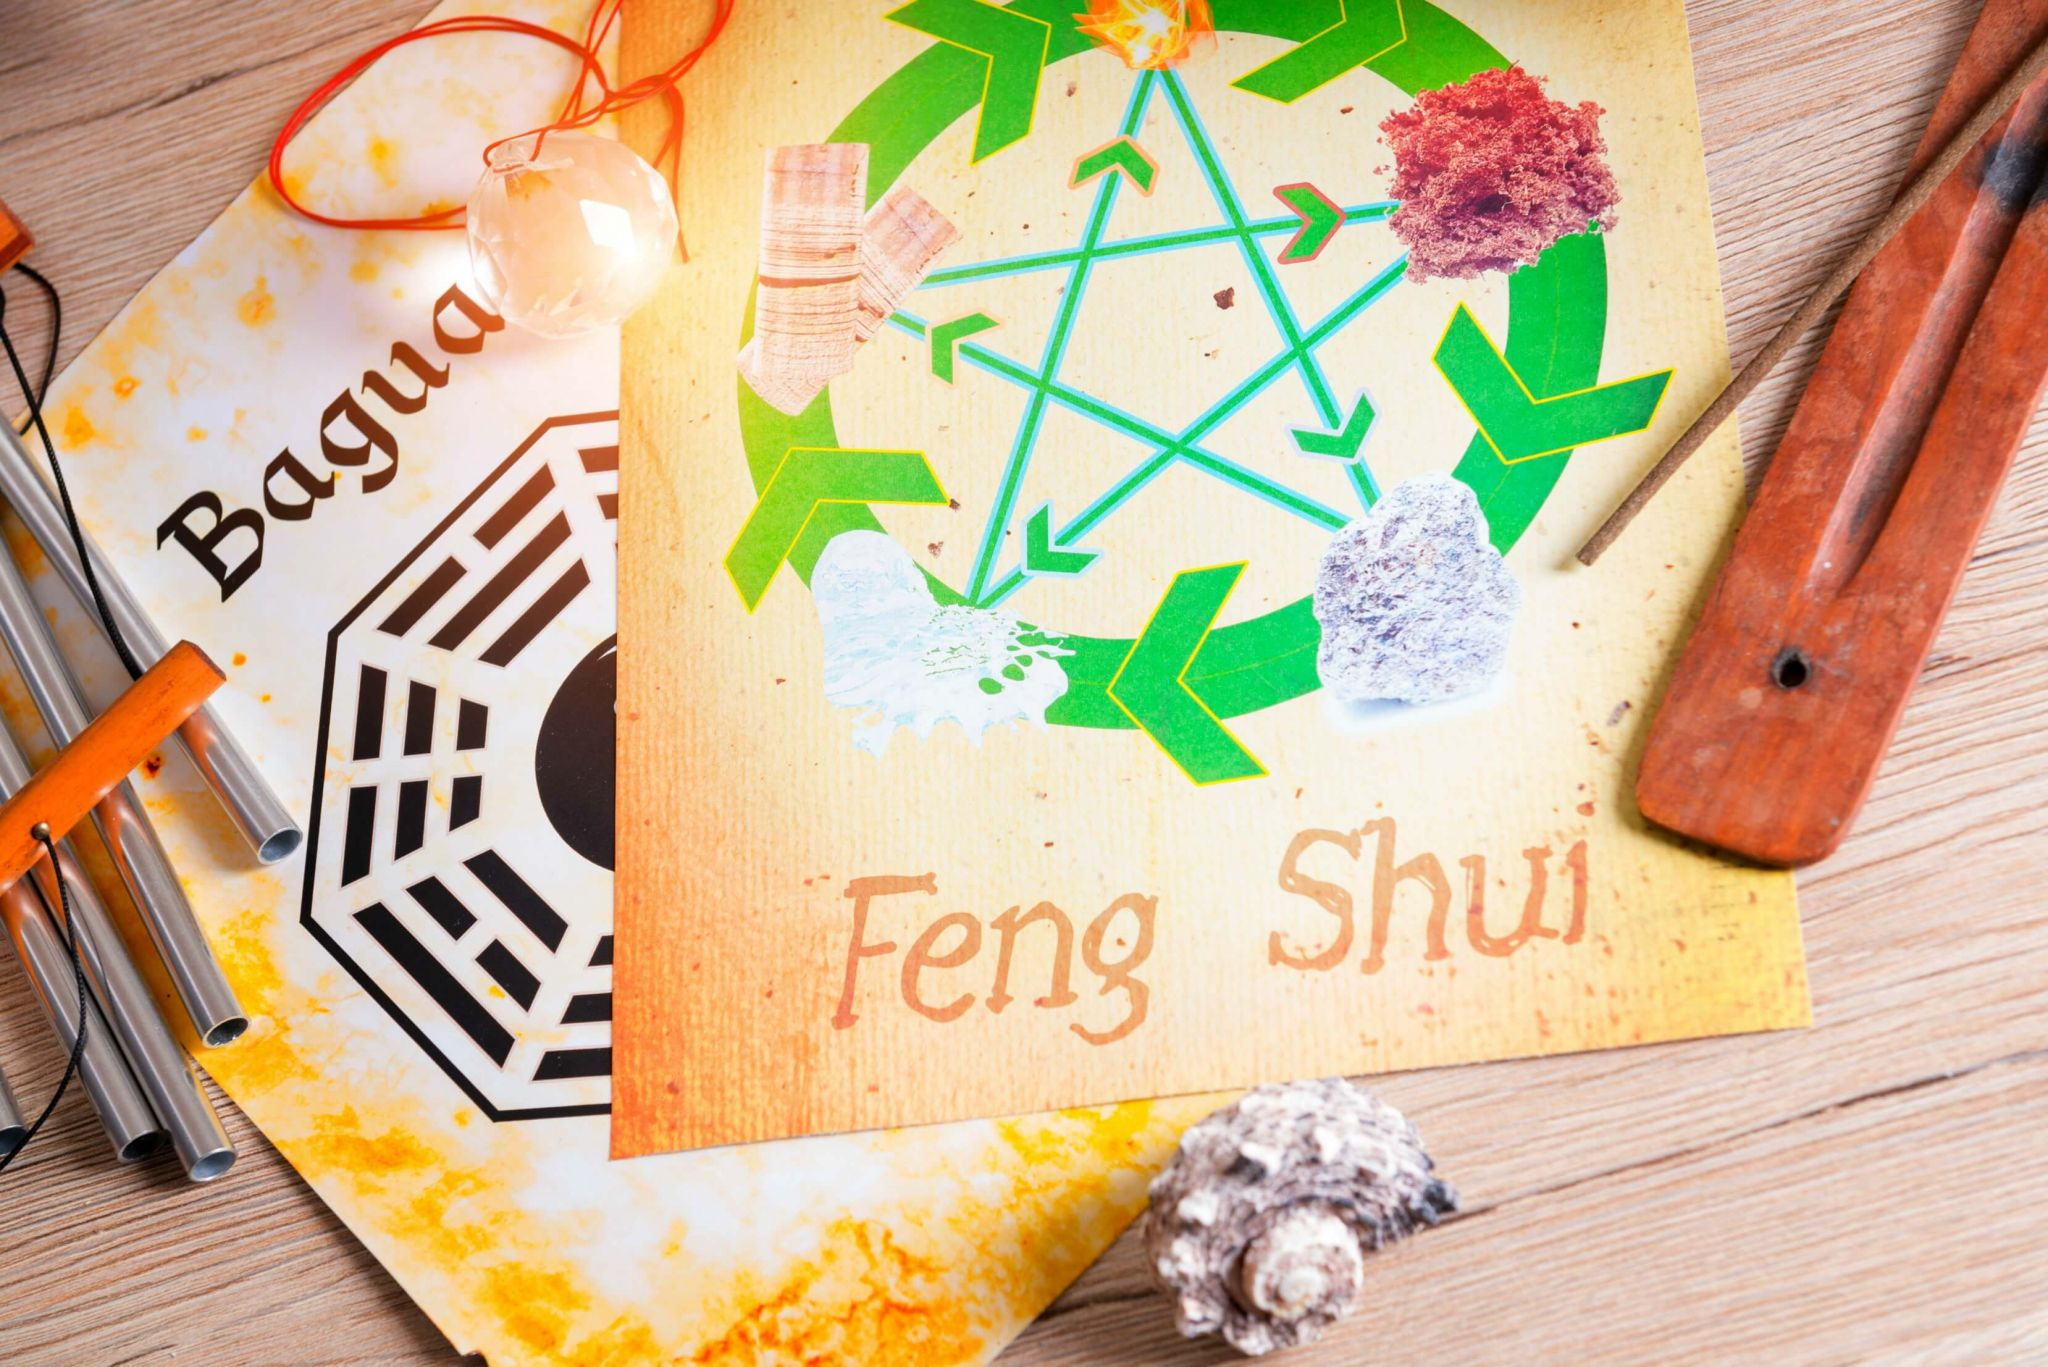 feng shui for health - tools including the Bagua